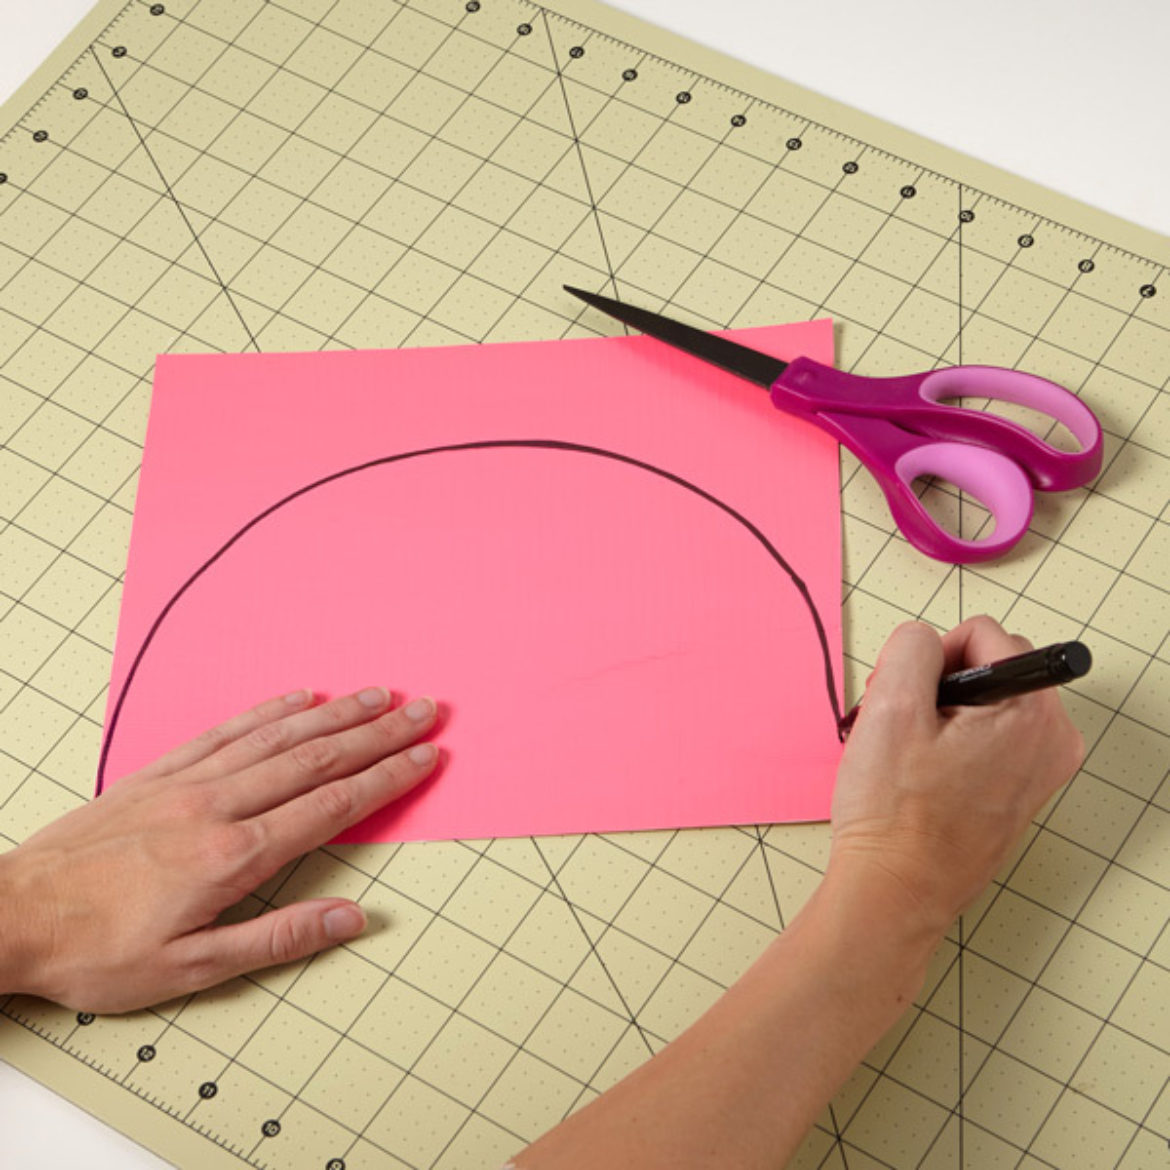 Half circle being drawn on a pink sheet of Duck Tape fabric